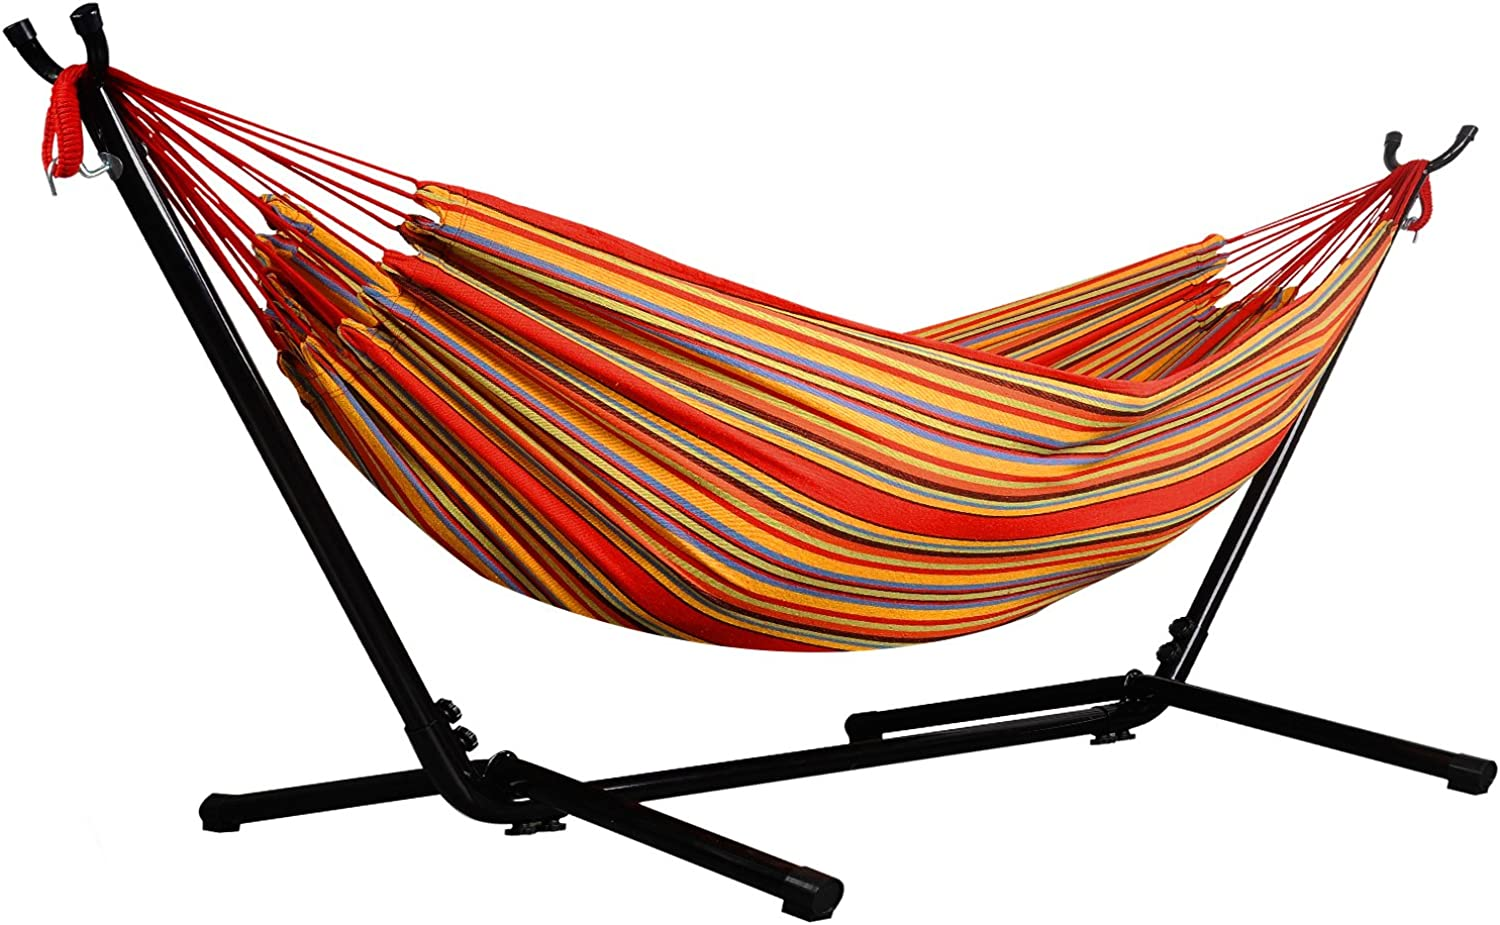 Afranker Double Hammock with SpaceSaving Steel Stand Techno